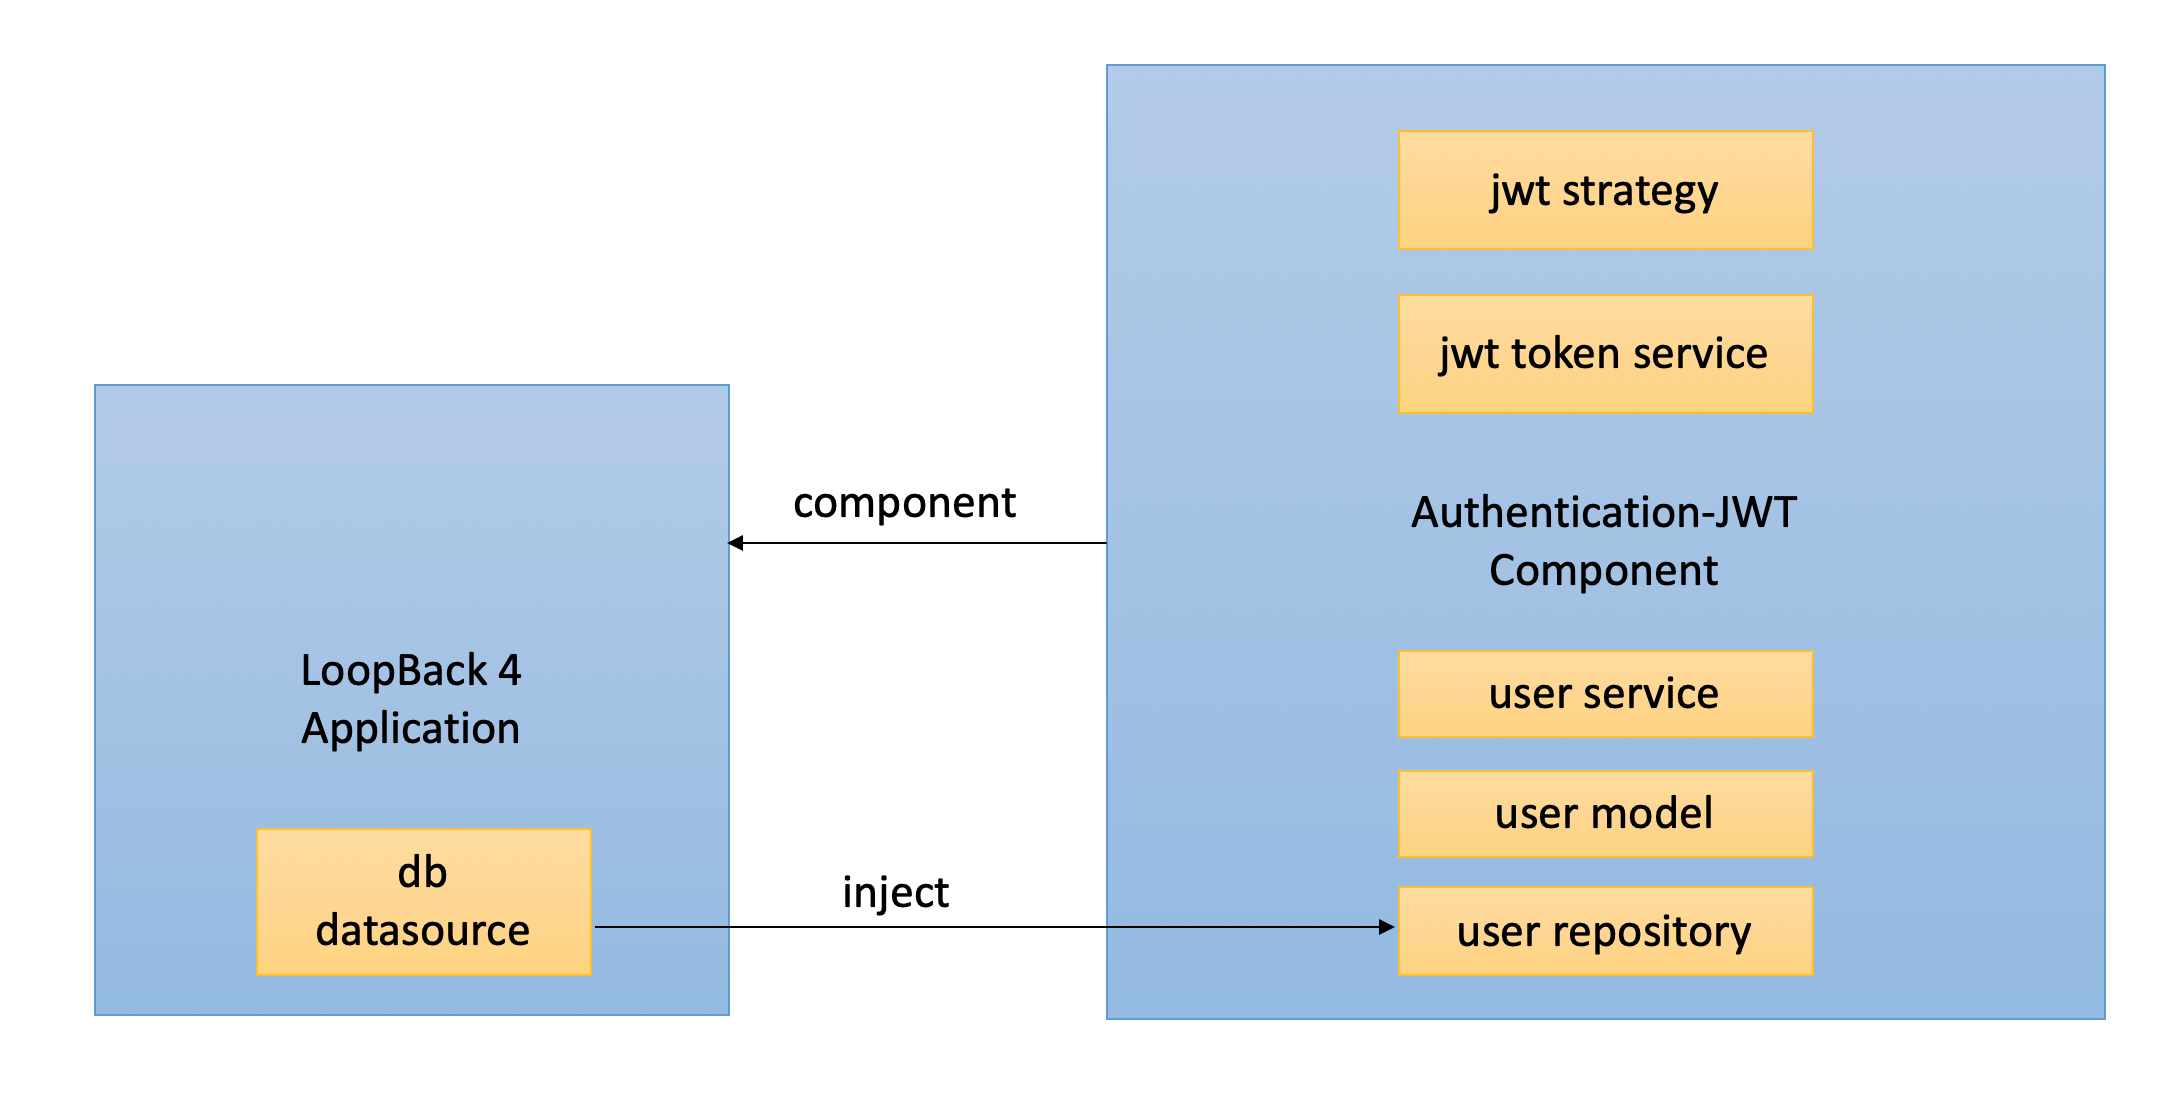 authentication-jwt